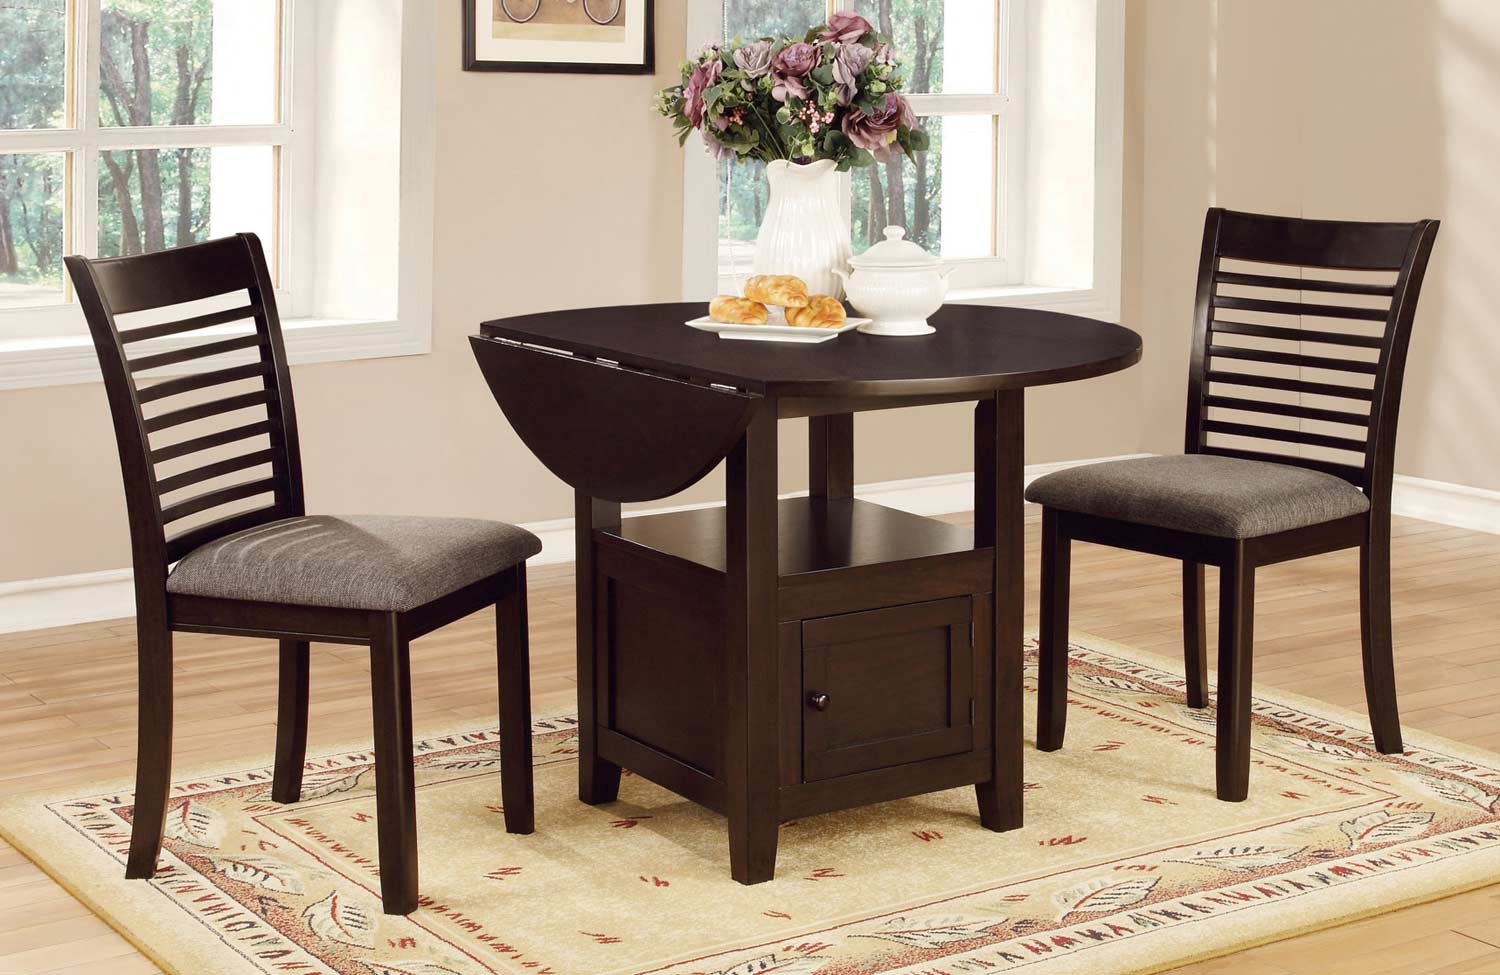 Coaster Stockton Drop Leaf Storage Dining Collection - Dark Brown